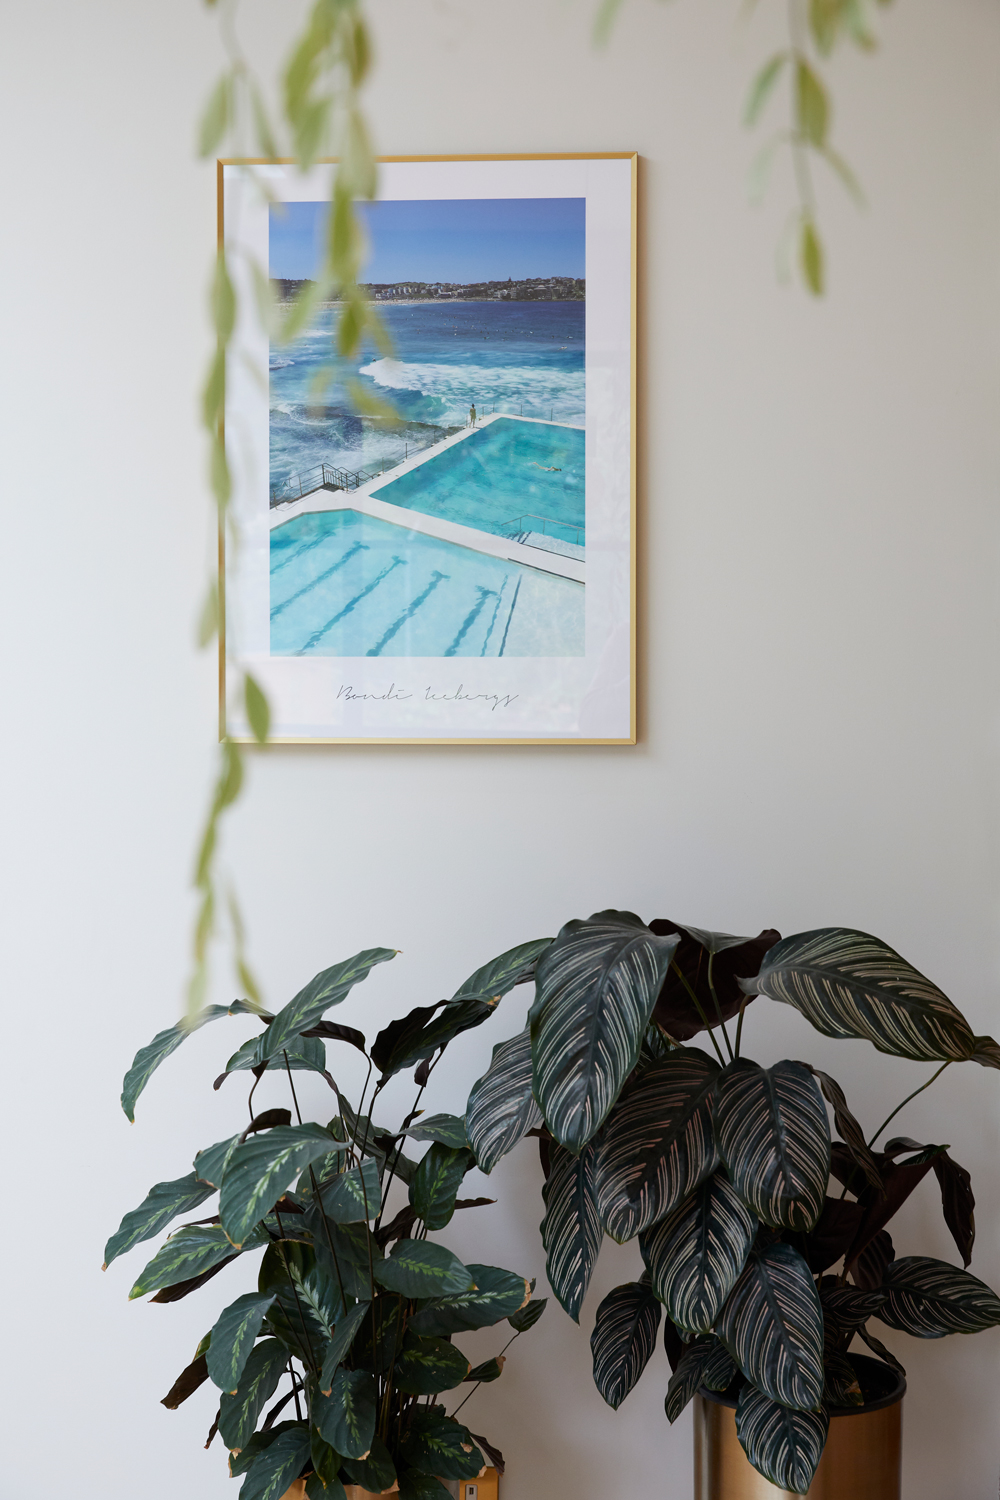 Swimming pool picture hangs on wall with floor standing planters